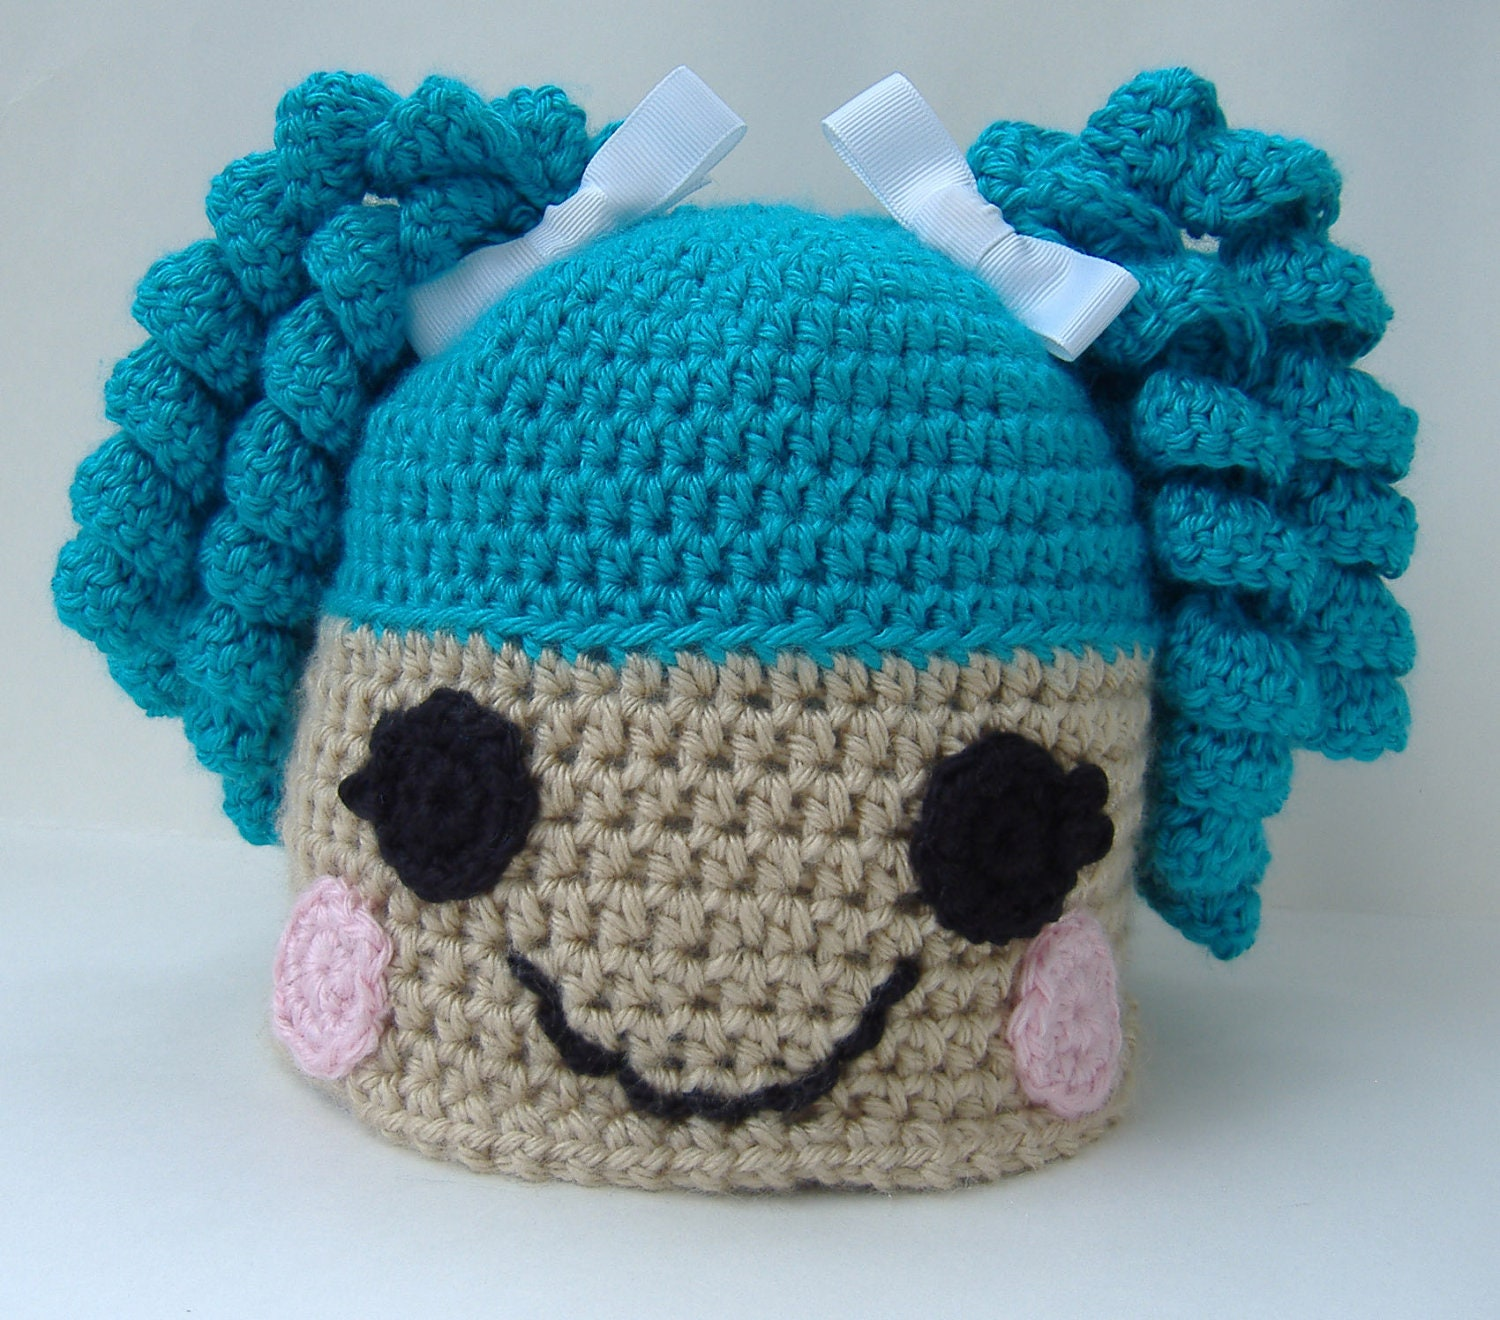 Free Crochet Pattern For Lalaloopsy Hat : Etsy - Your place to buy and sell all things handmade ...